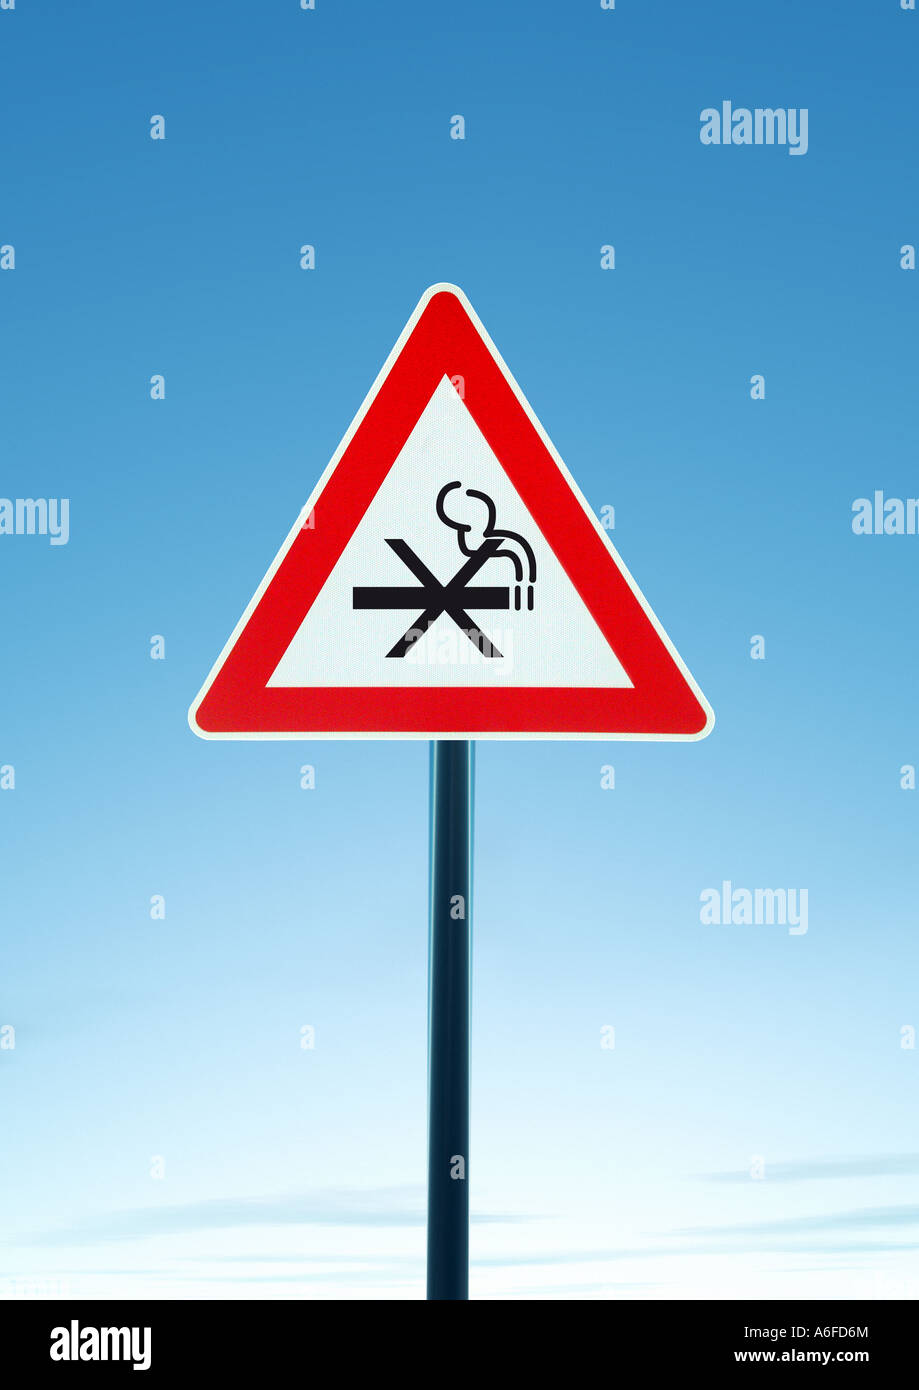 attention non smokers Achtung Nichtraucher - Stock Image